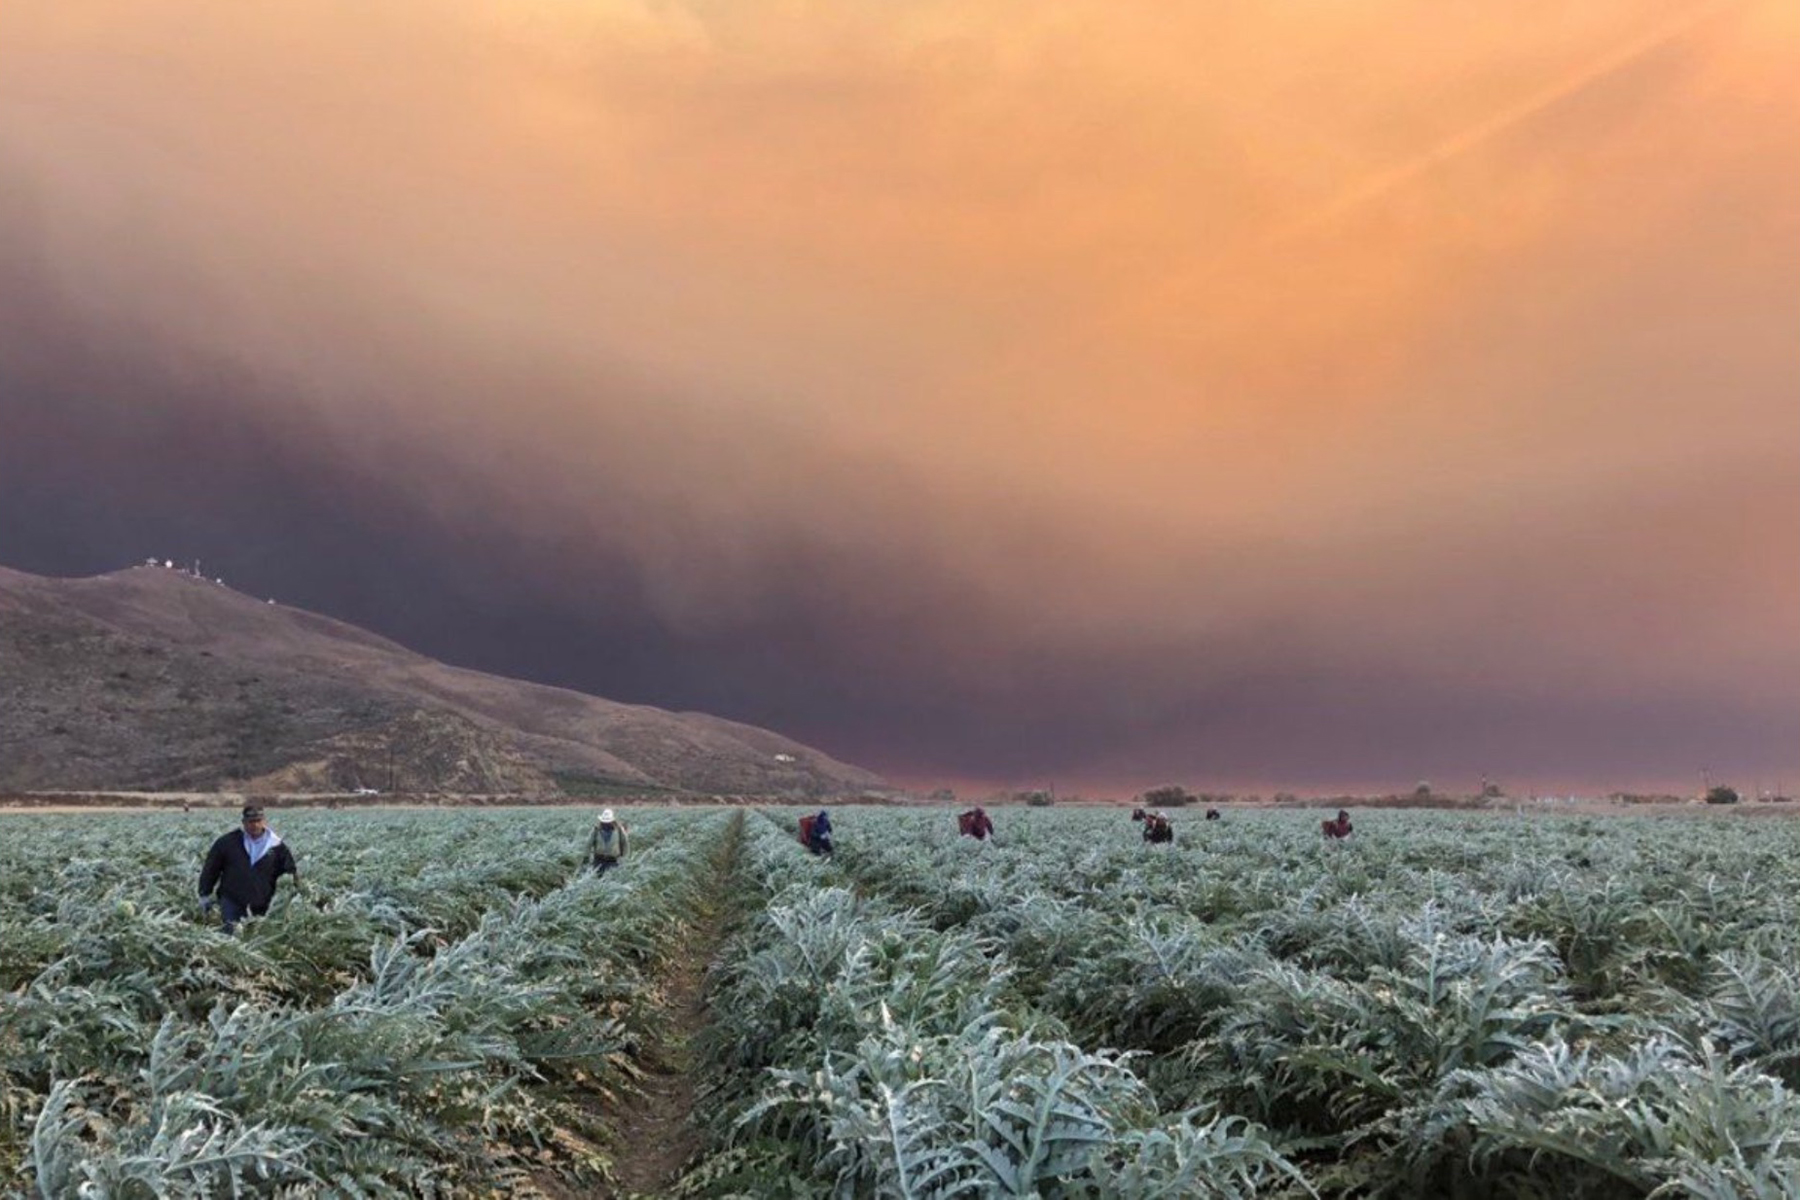 California farmworkers have endured heatwaves, wildfires and a pandemic that continues to spread during peak harvest season for almonds and wine grapes. (Photo courtesy of UFW/United Farm Workers)